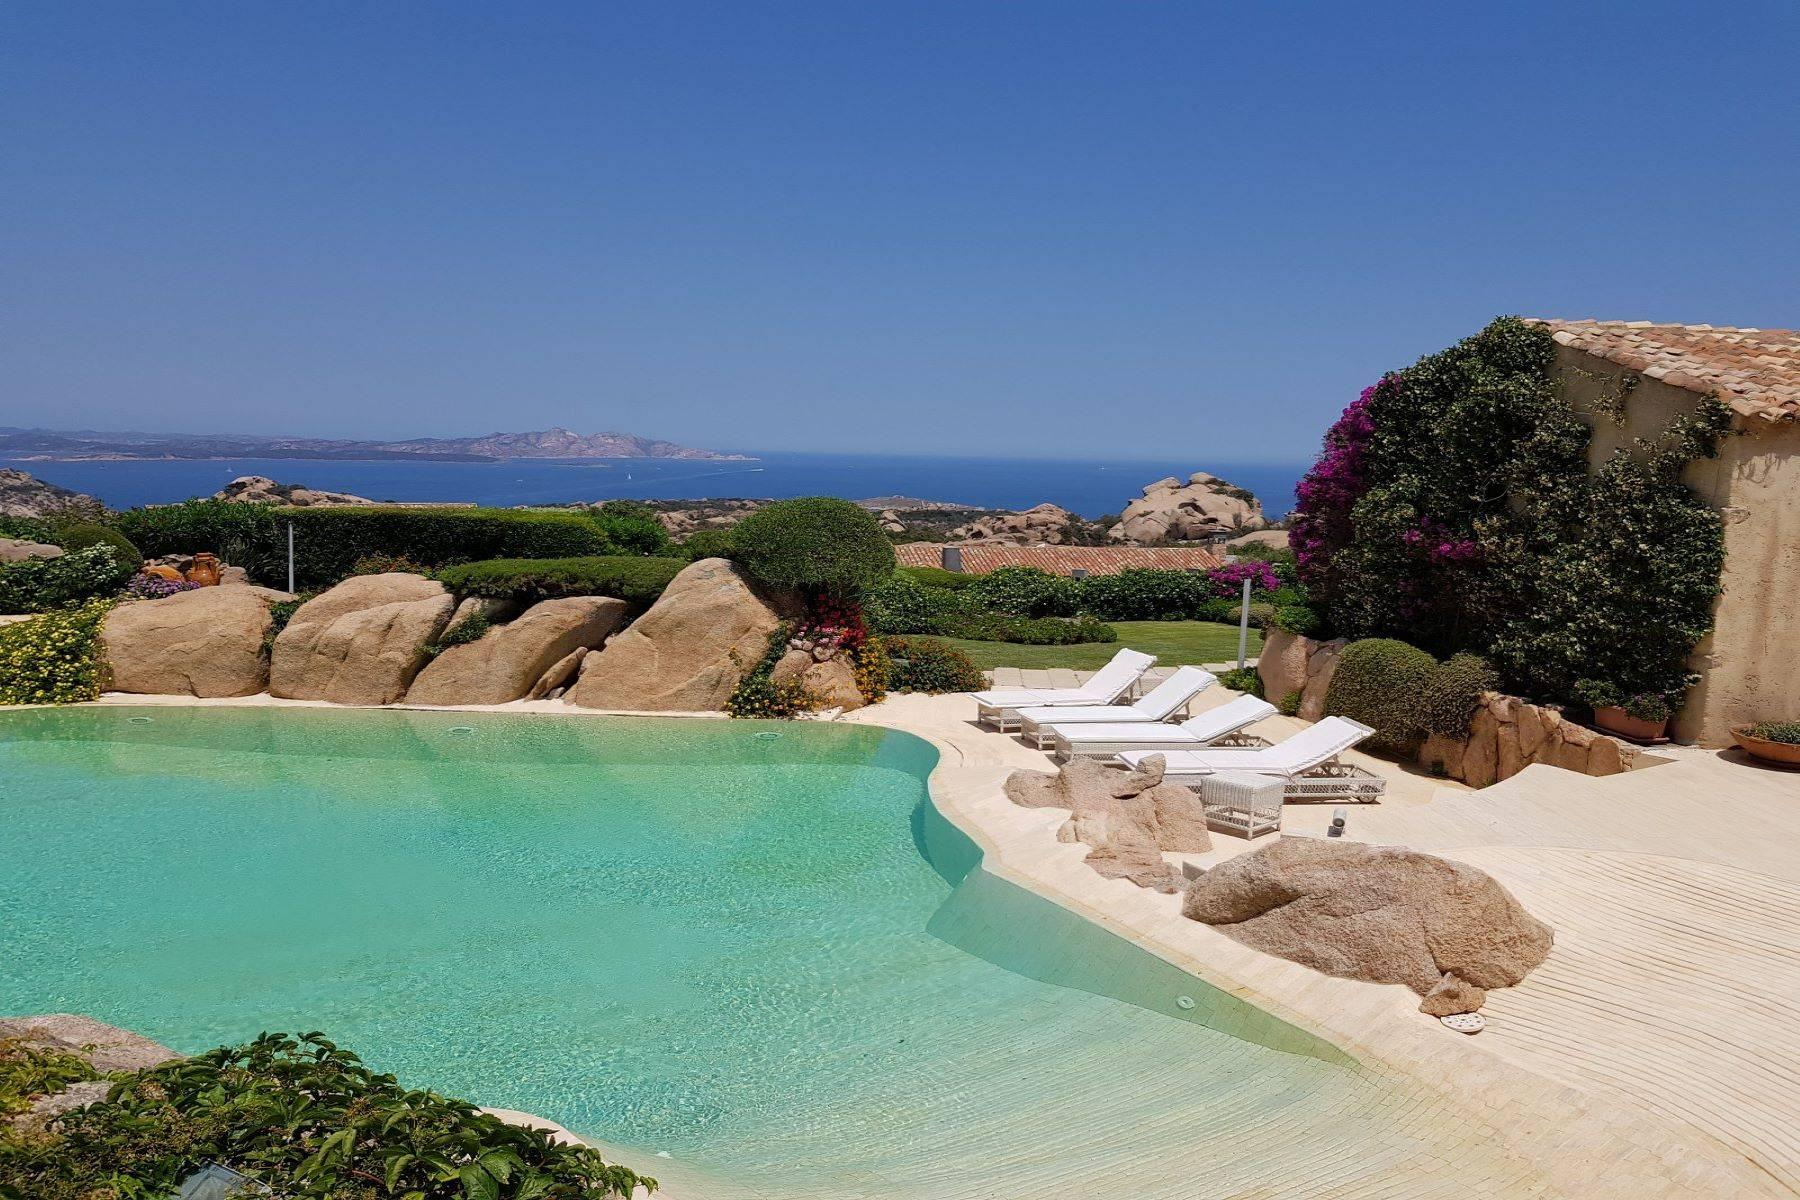 Exclusive property with stunning sea views overlooking the Costa Smeralda - 15